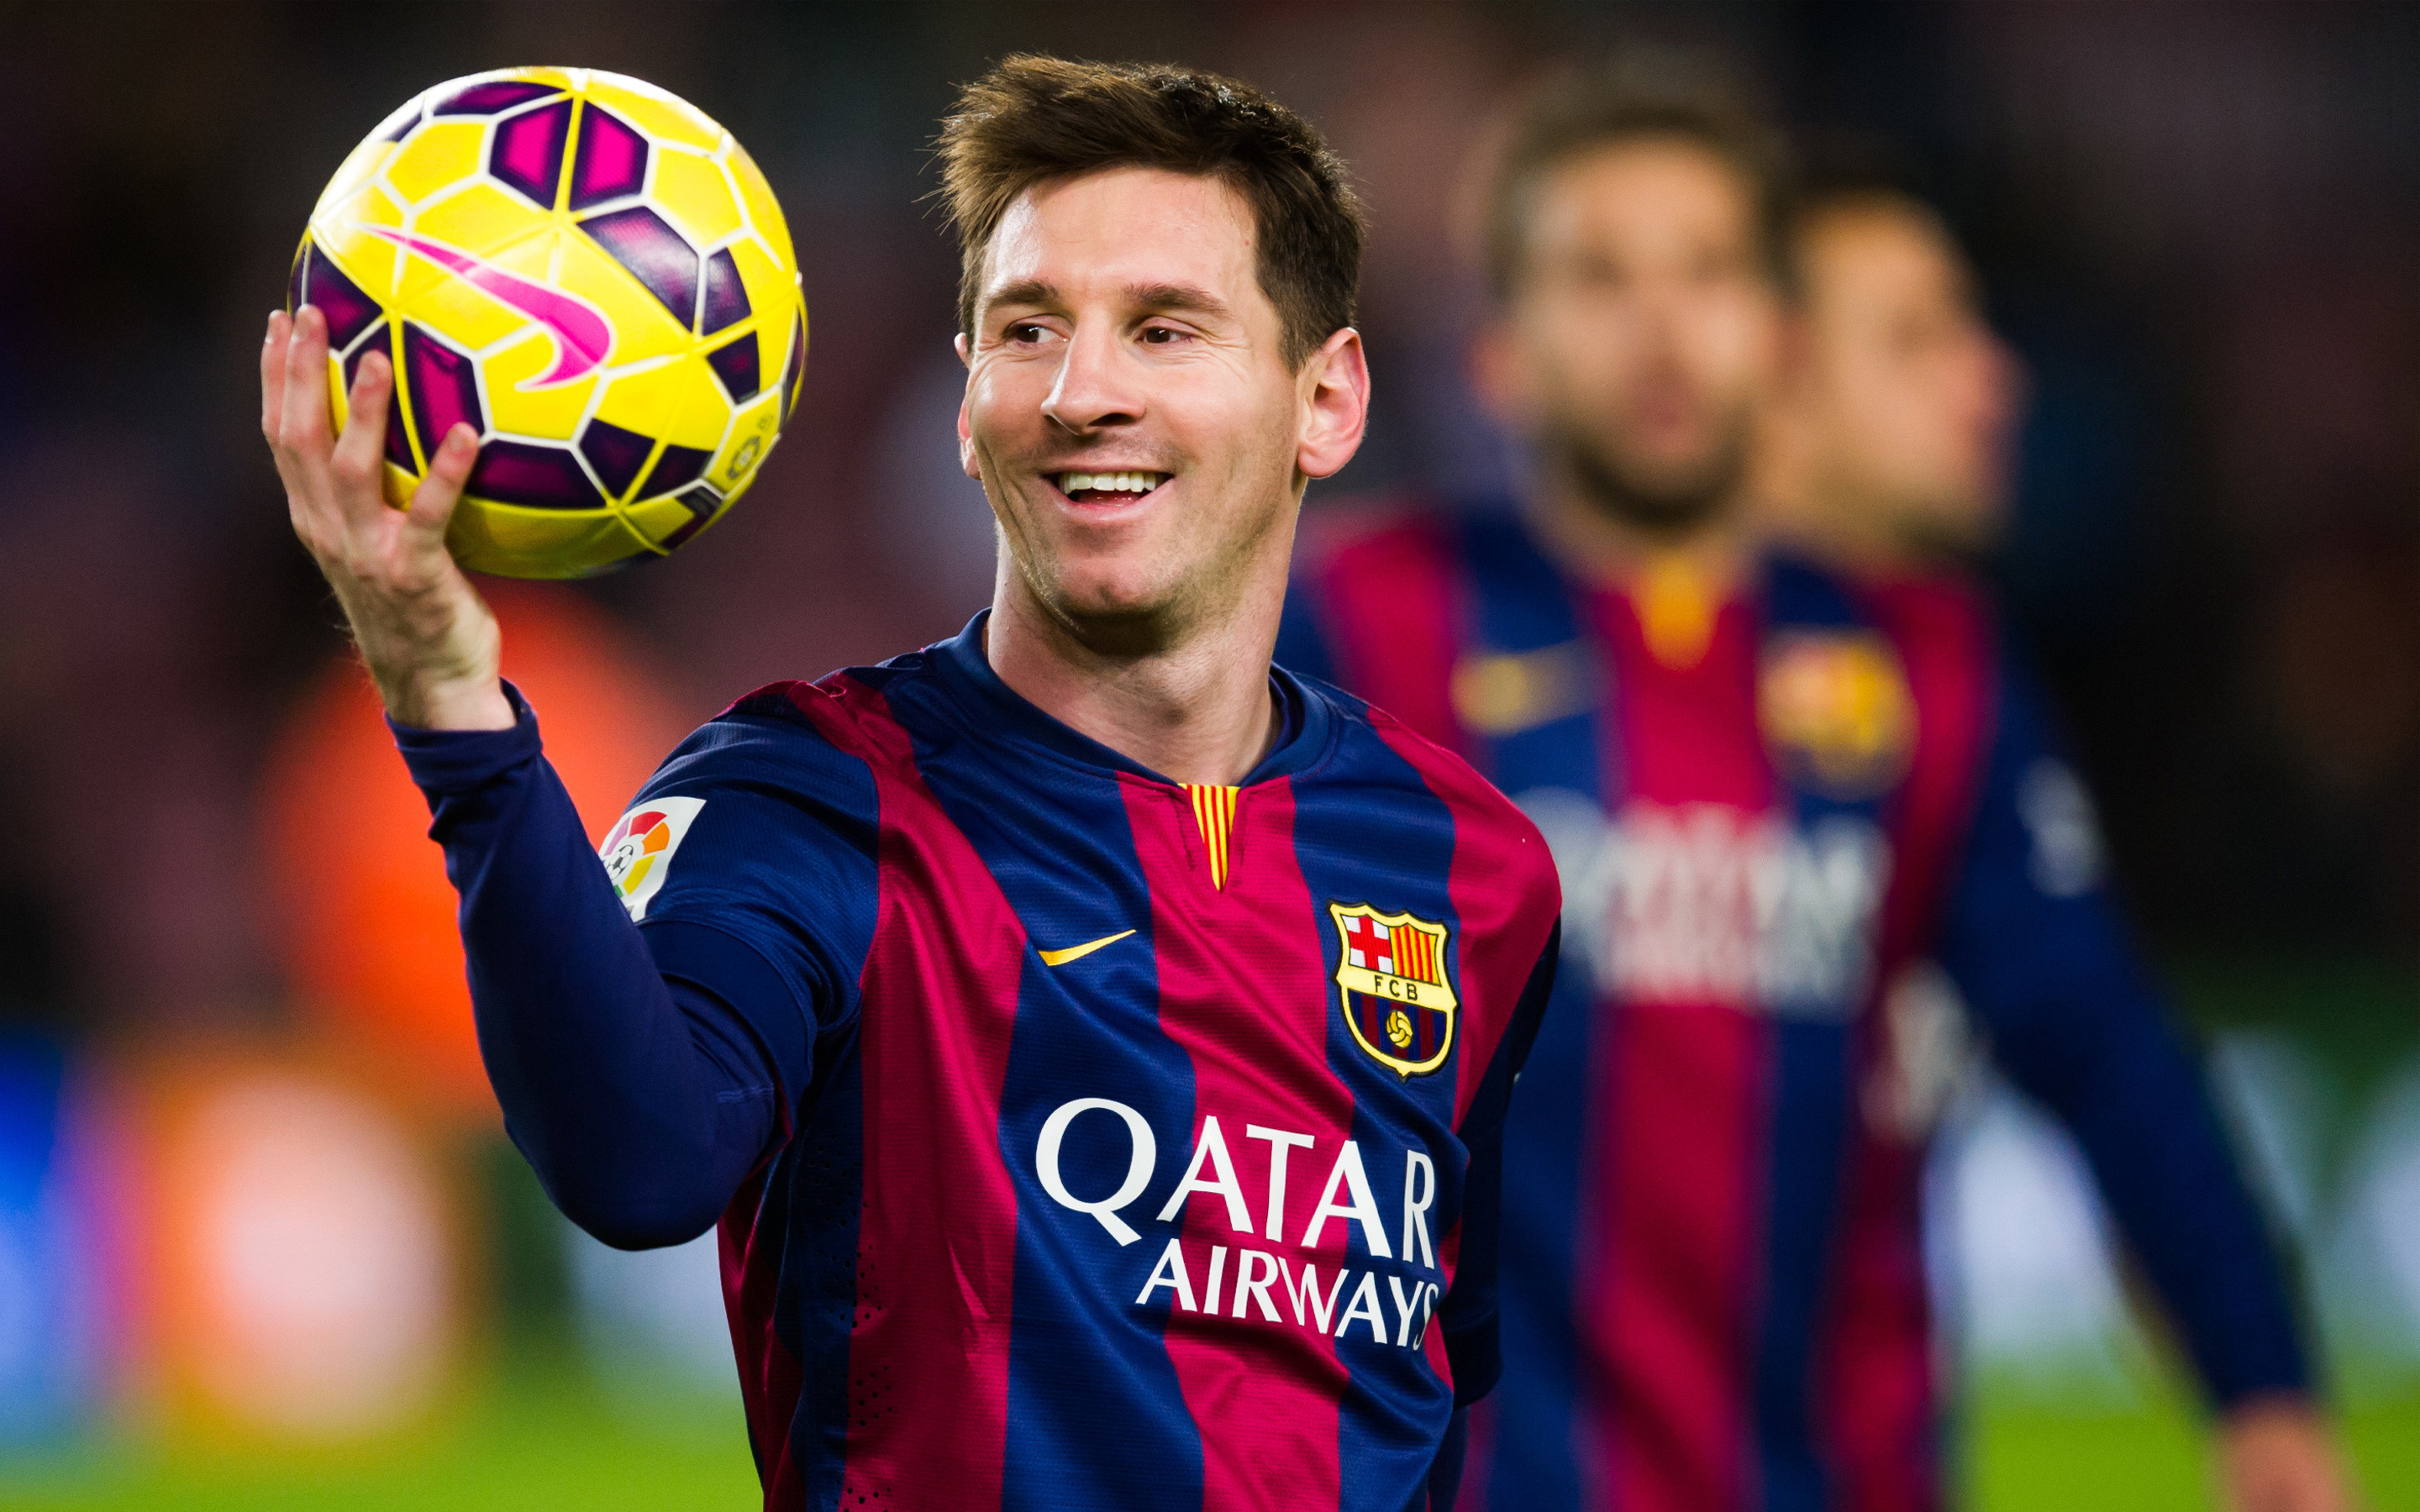 Res: 2880x1800, Tags: Player Soccer Messi Lionel